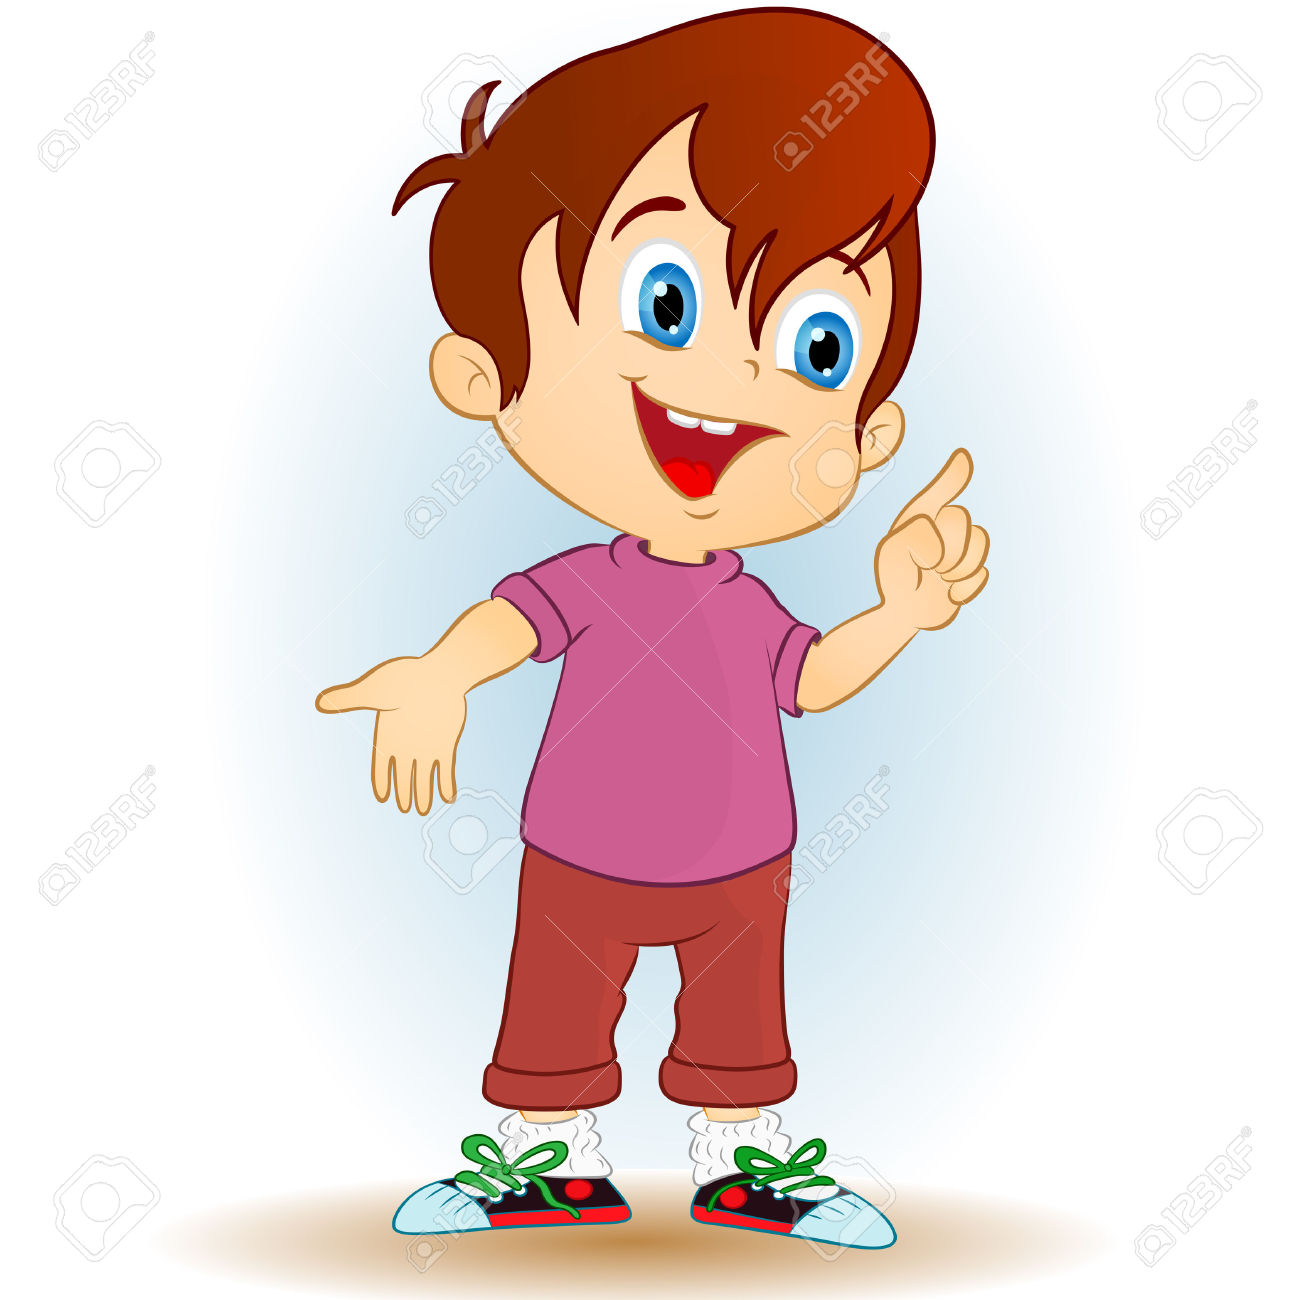 Young Boy On A White Background Royalty Free Cliparts, Vectors.